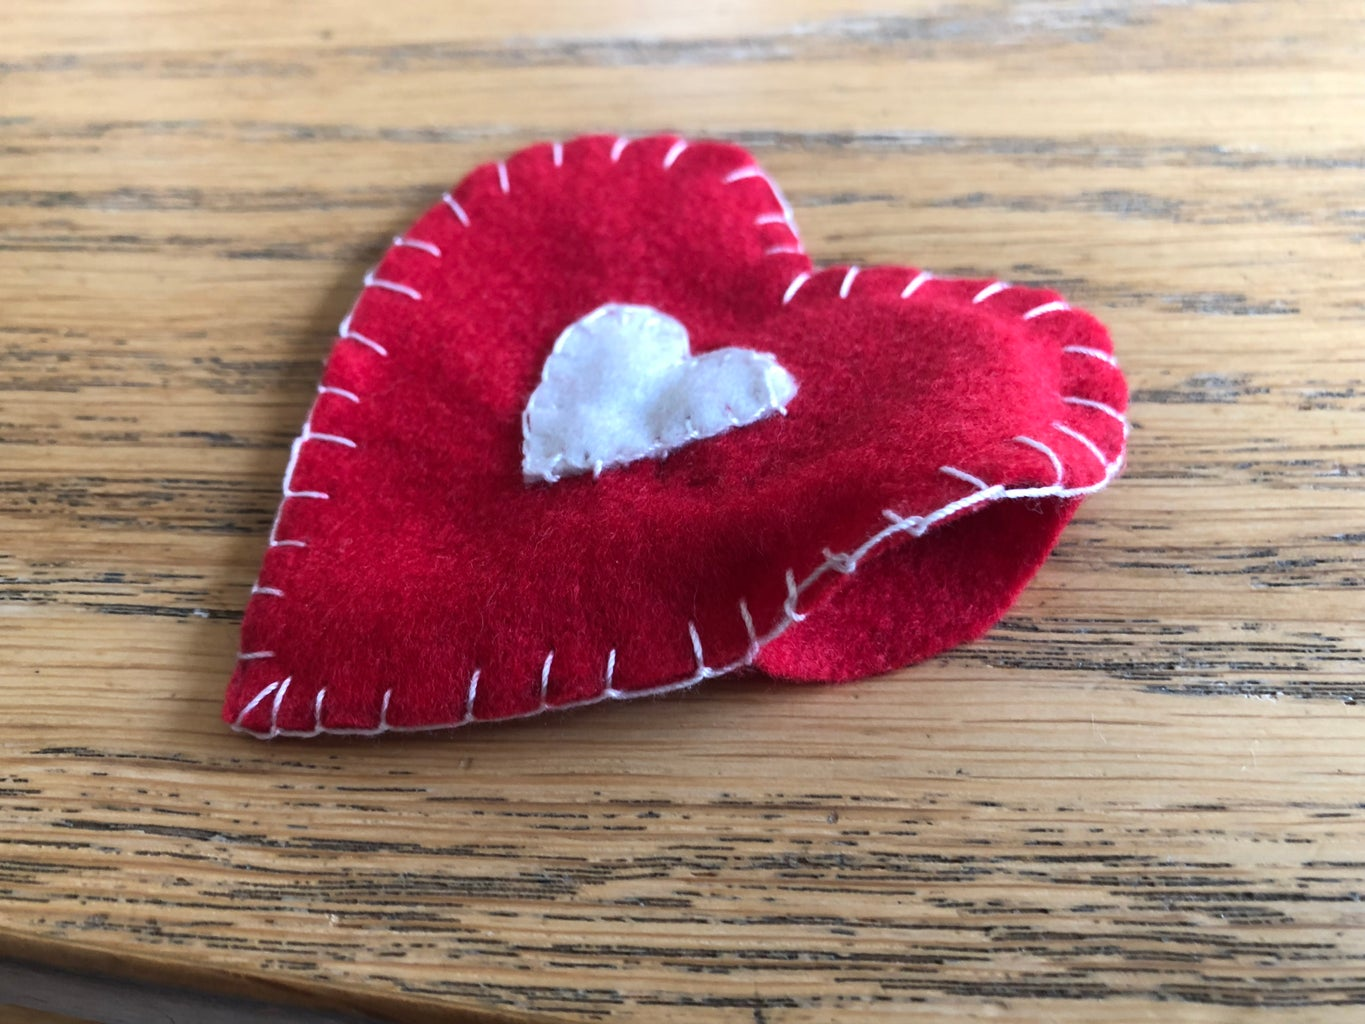 Sew the Red Hearts Together